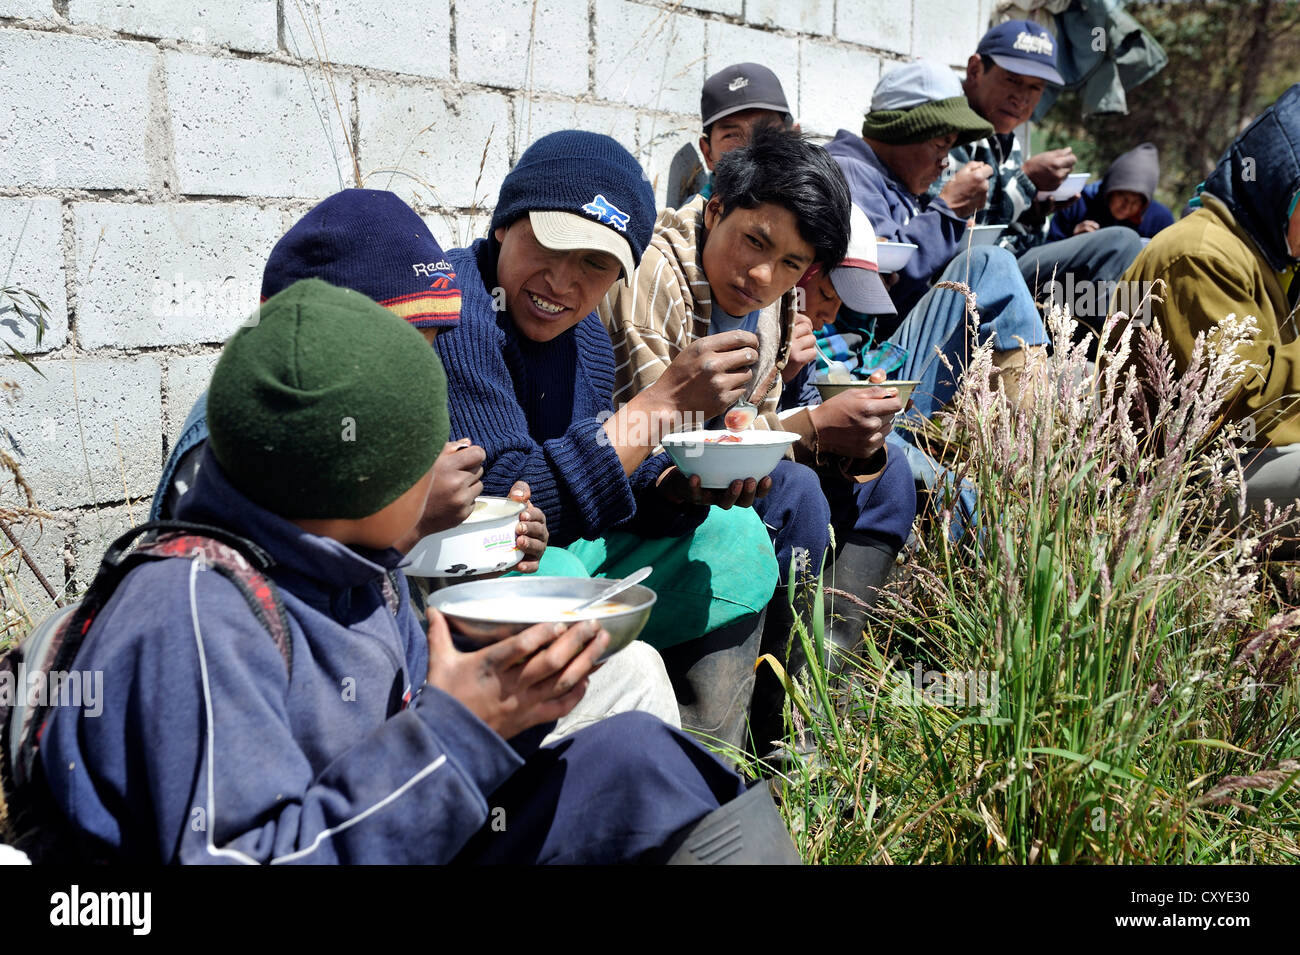 Volunteers doing voluntary community work, Minga, being fed, eating soup, after the installation of a fresh water - Stock Image